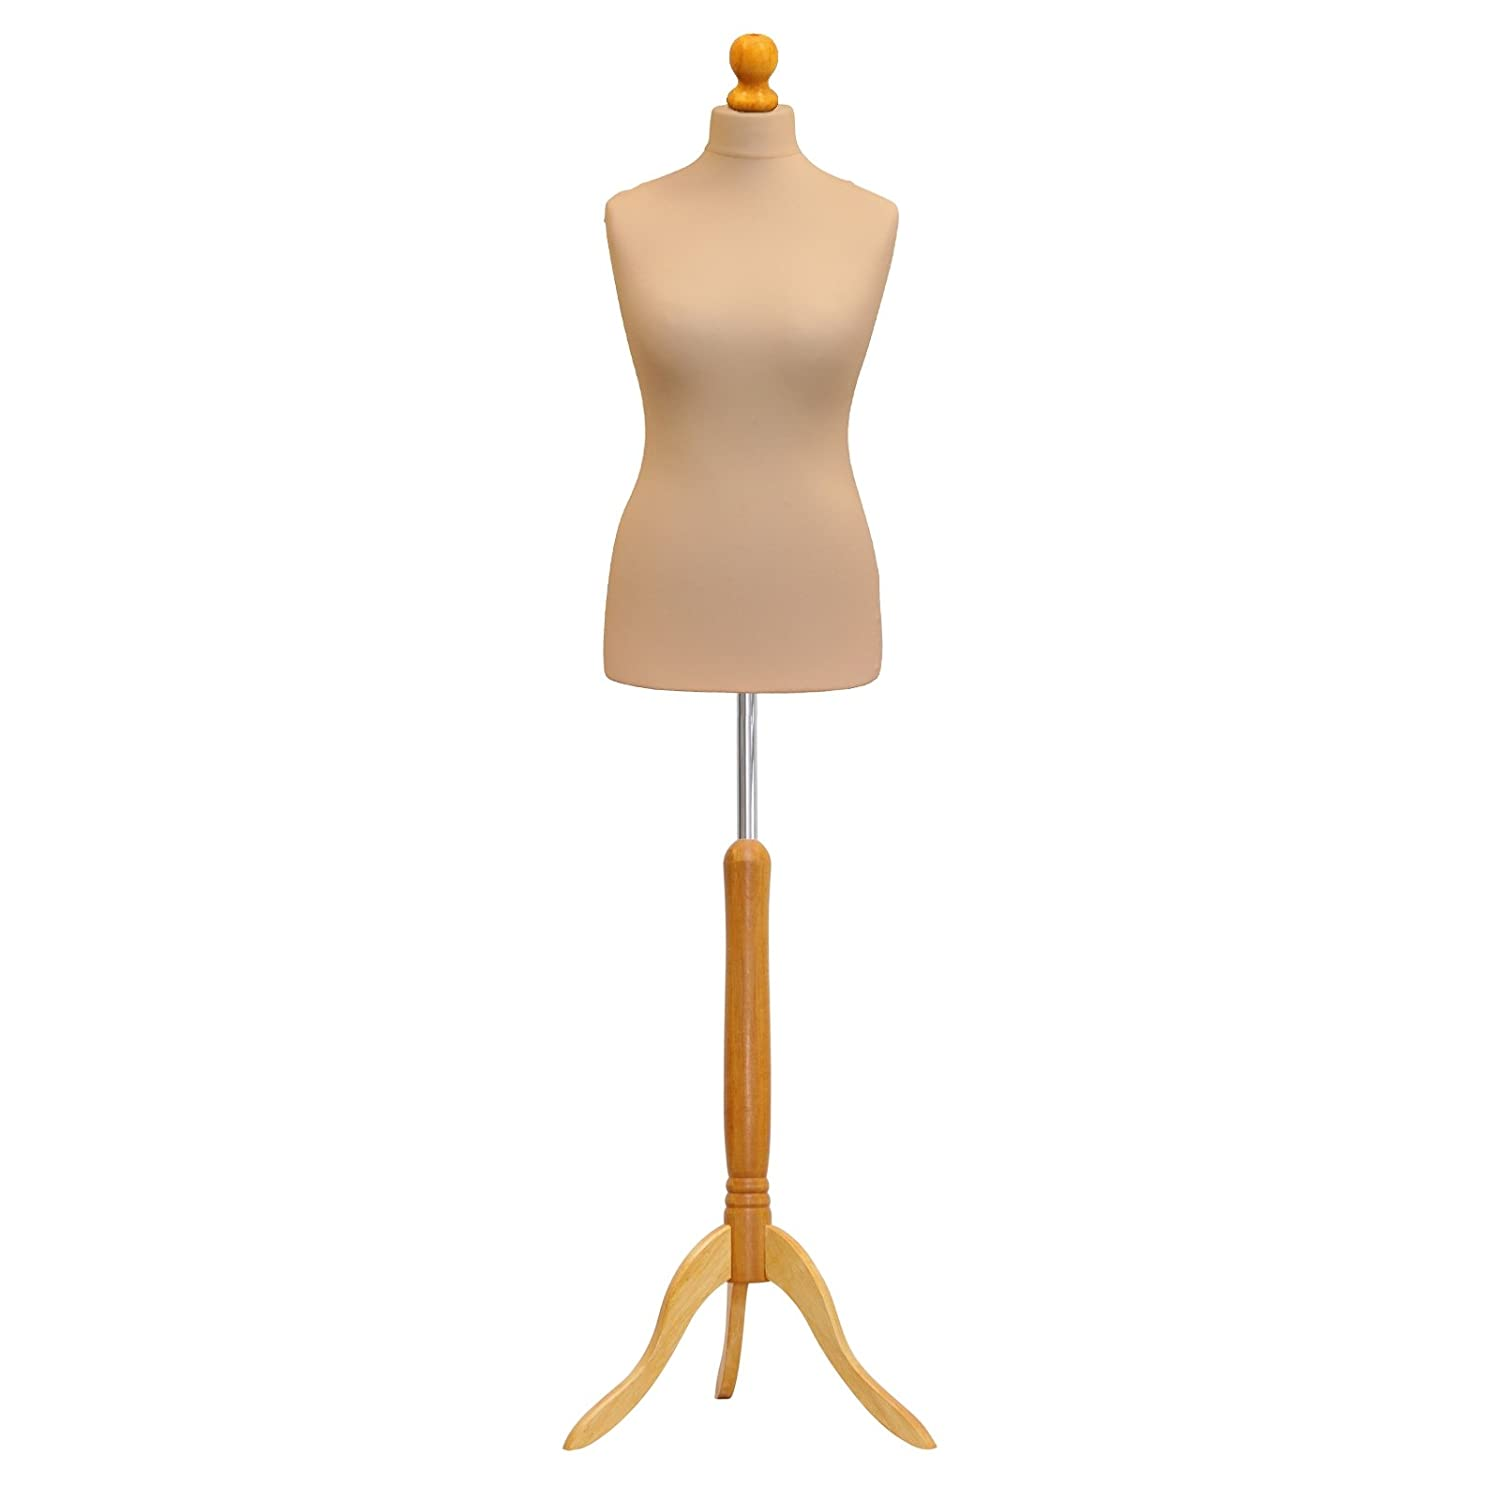 Female Tailor Dummy Cream Size 10/12 Dressmakers Dummies Fashion Students Display Bust With A Light Wood Base ANKMARKETING LTD